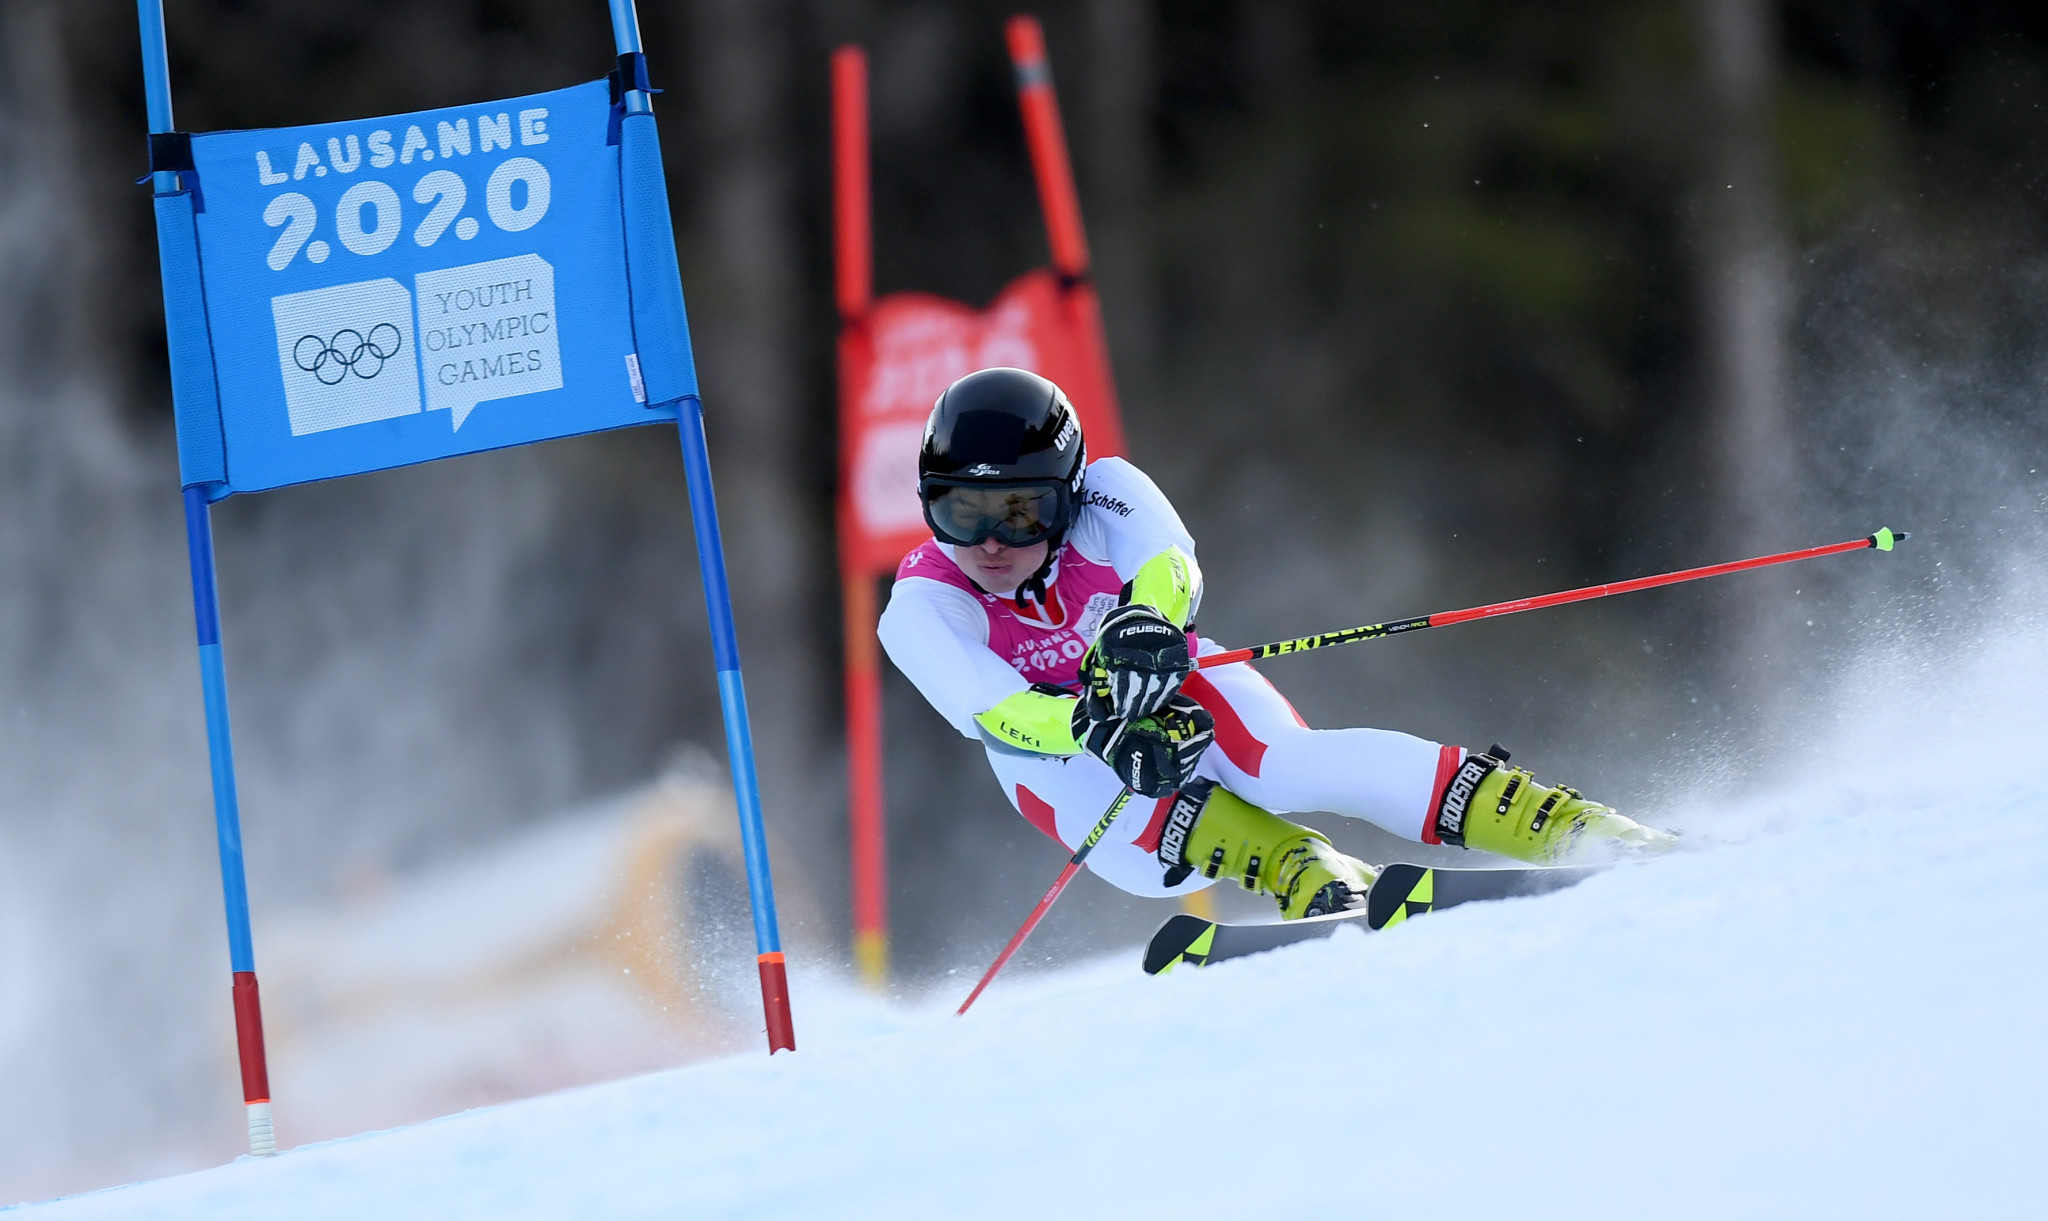 Dominant display sees Hoffmann crowned Lausanne 2020 giant slalom champion